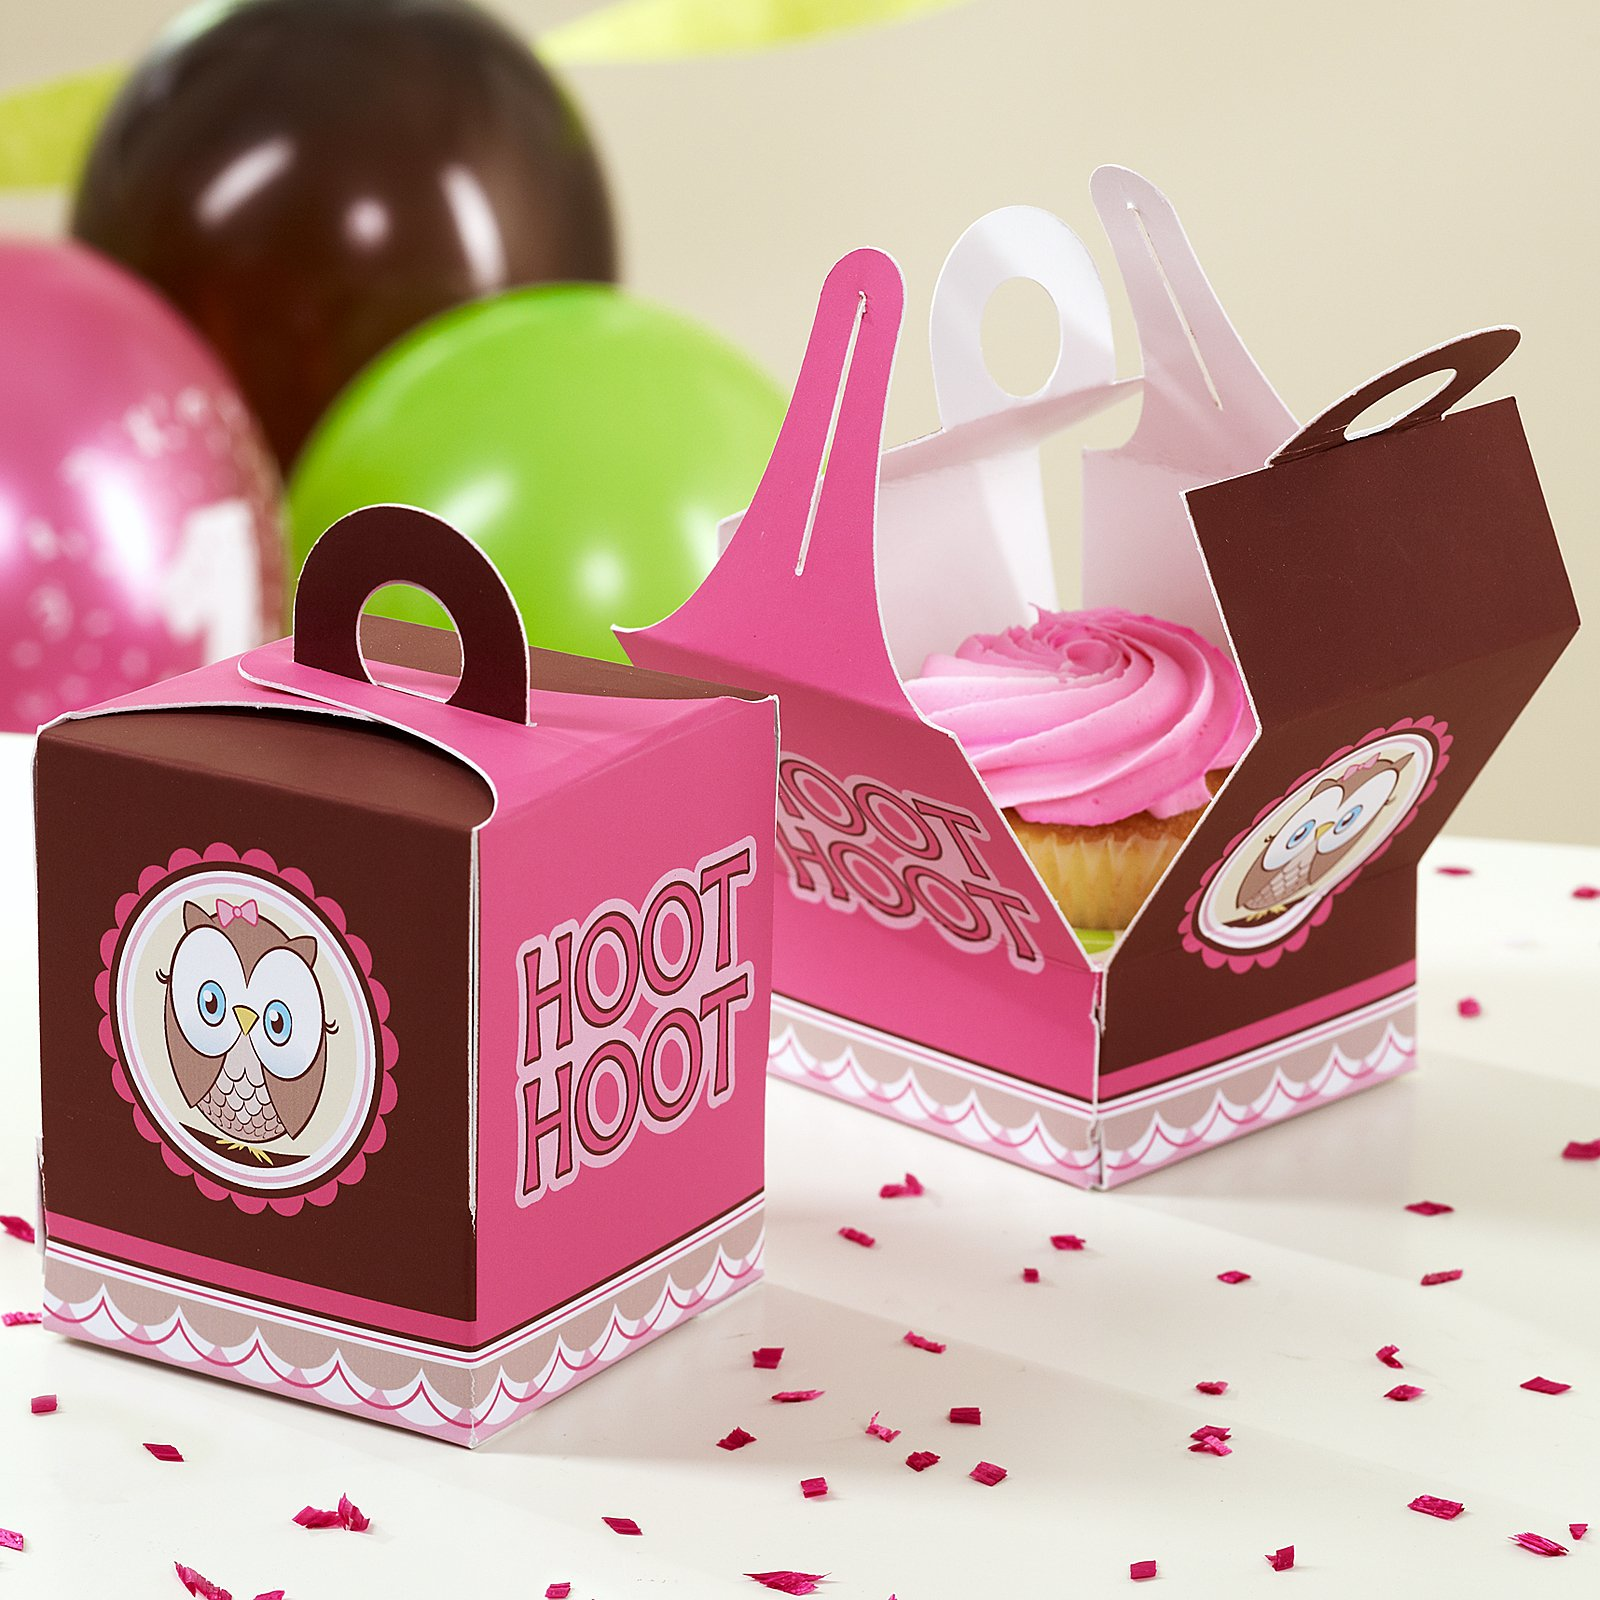 Look Whoo's 1 Pink Cupcake Boxes (4 count)